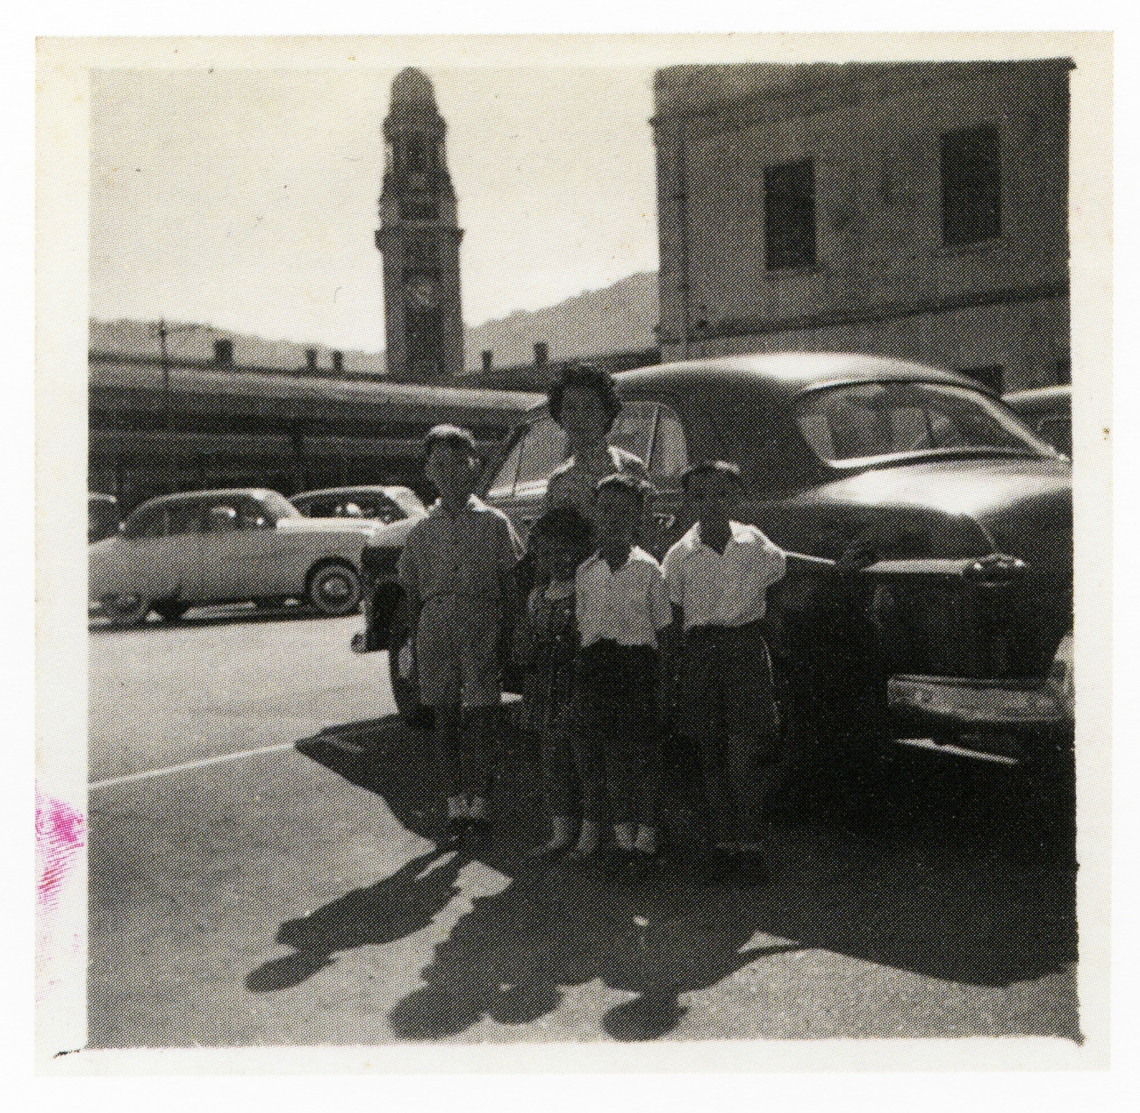 Newly arrived in Hong Kong. Posing next to a stranger's car, 1956